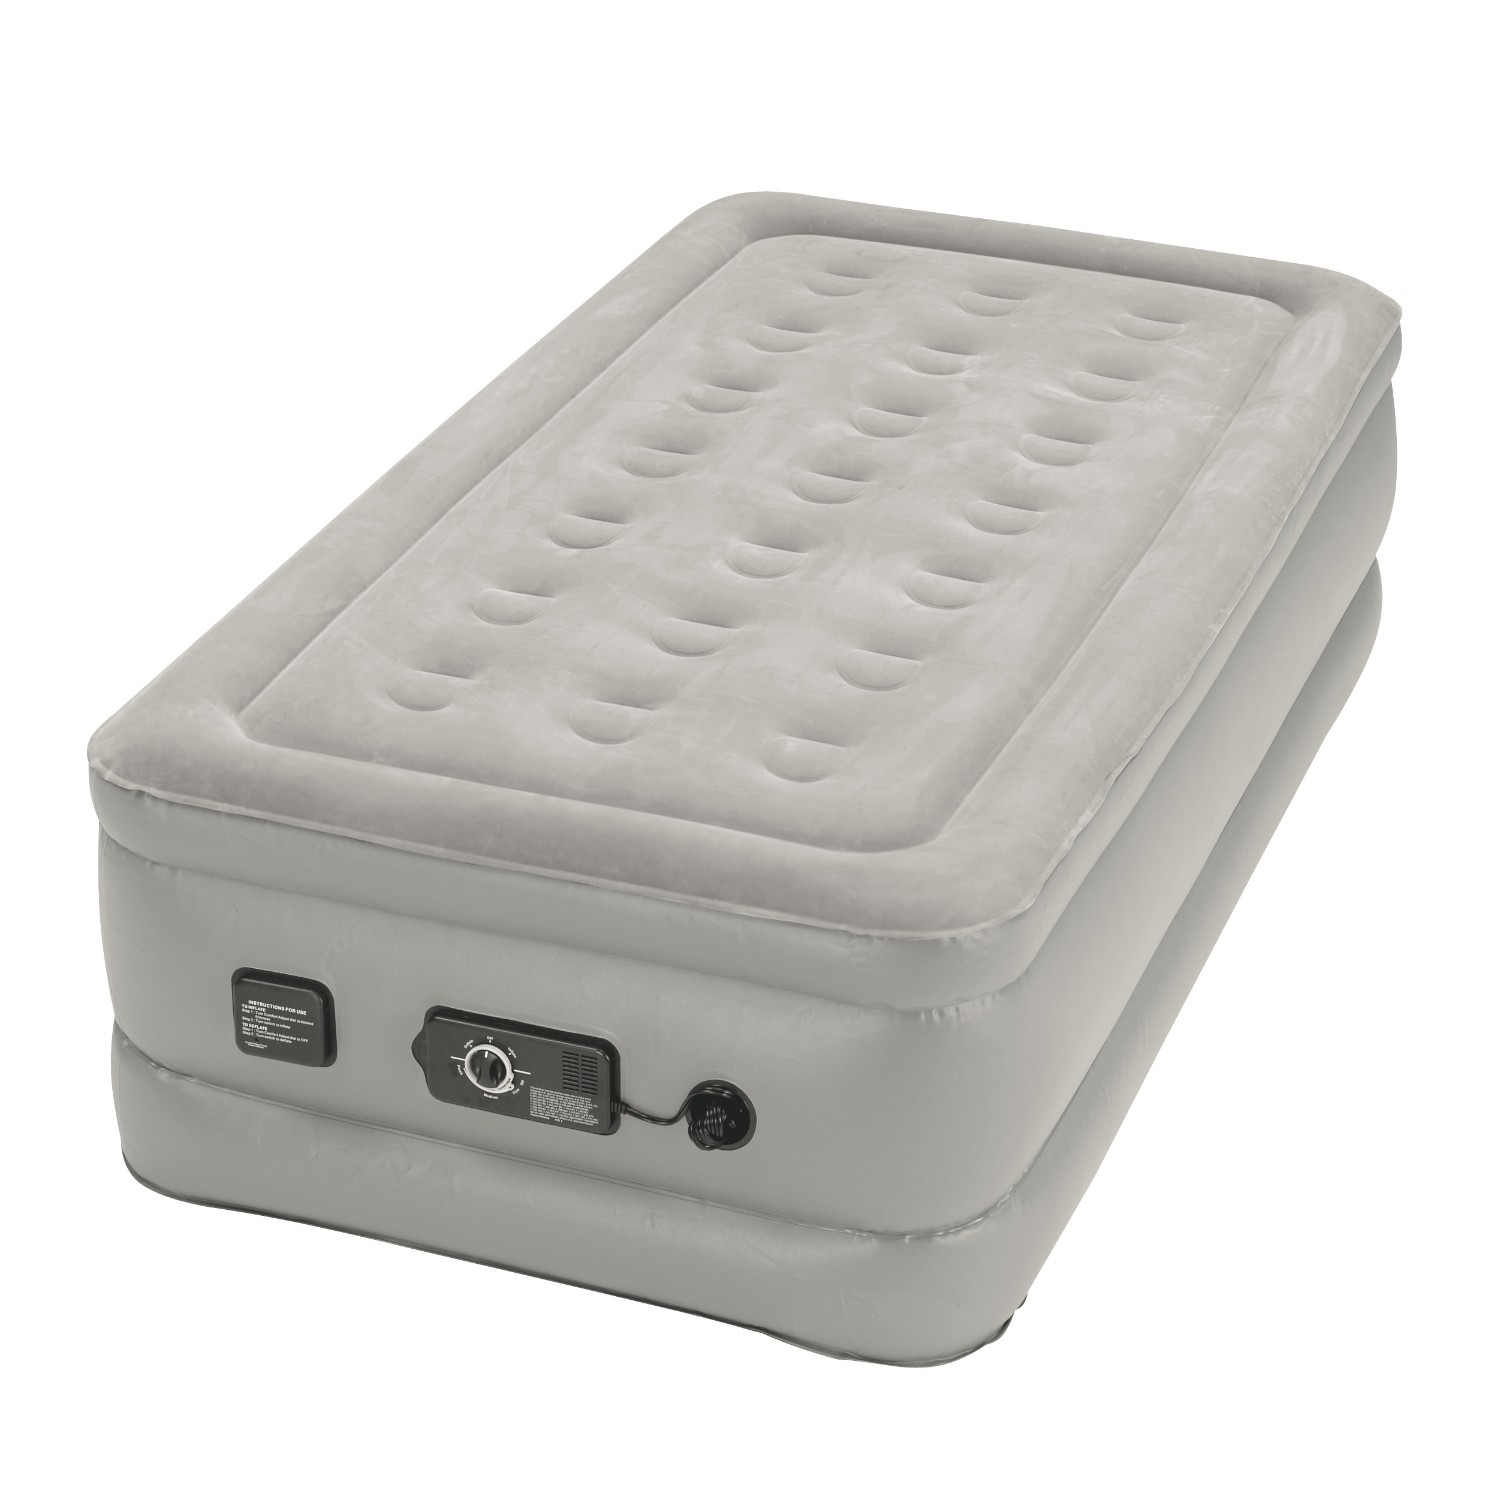 Insta-bed Raised Twin Airbed with NeverFlat Pump